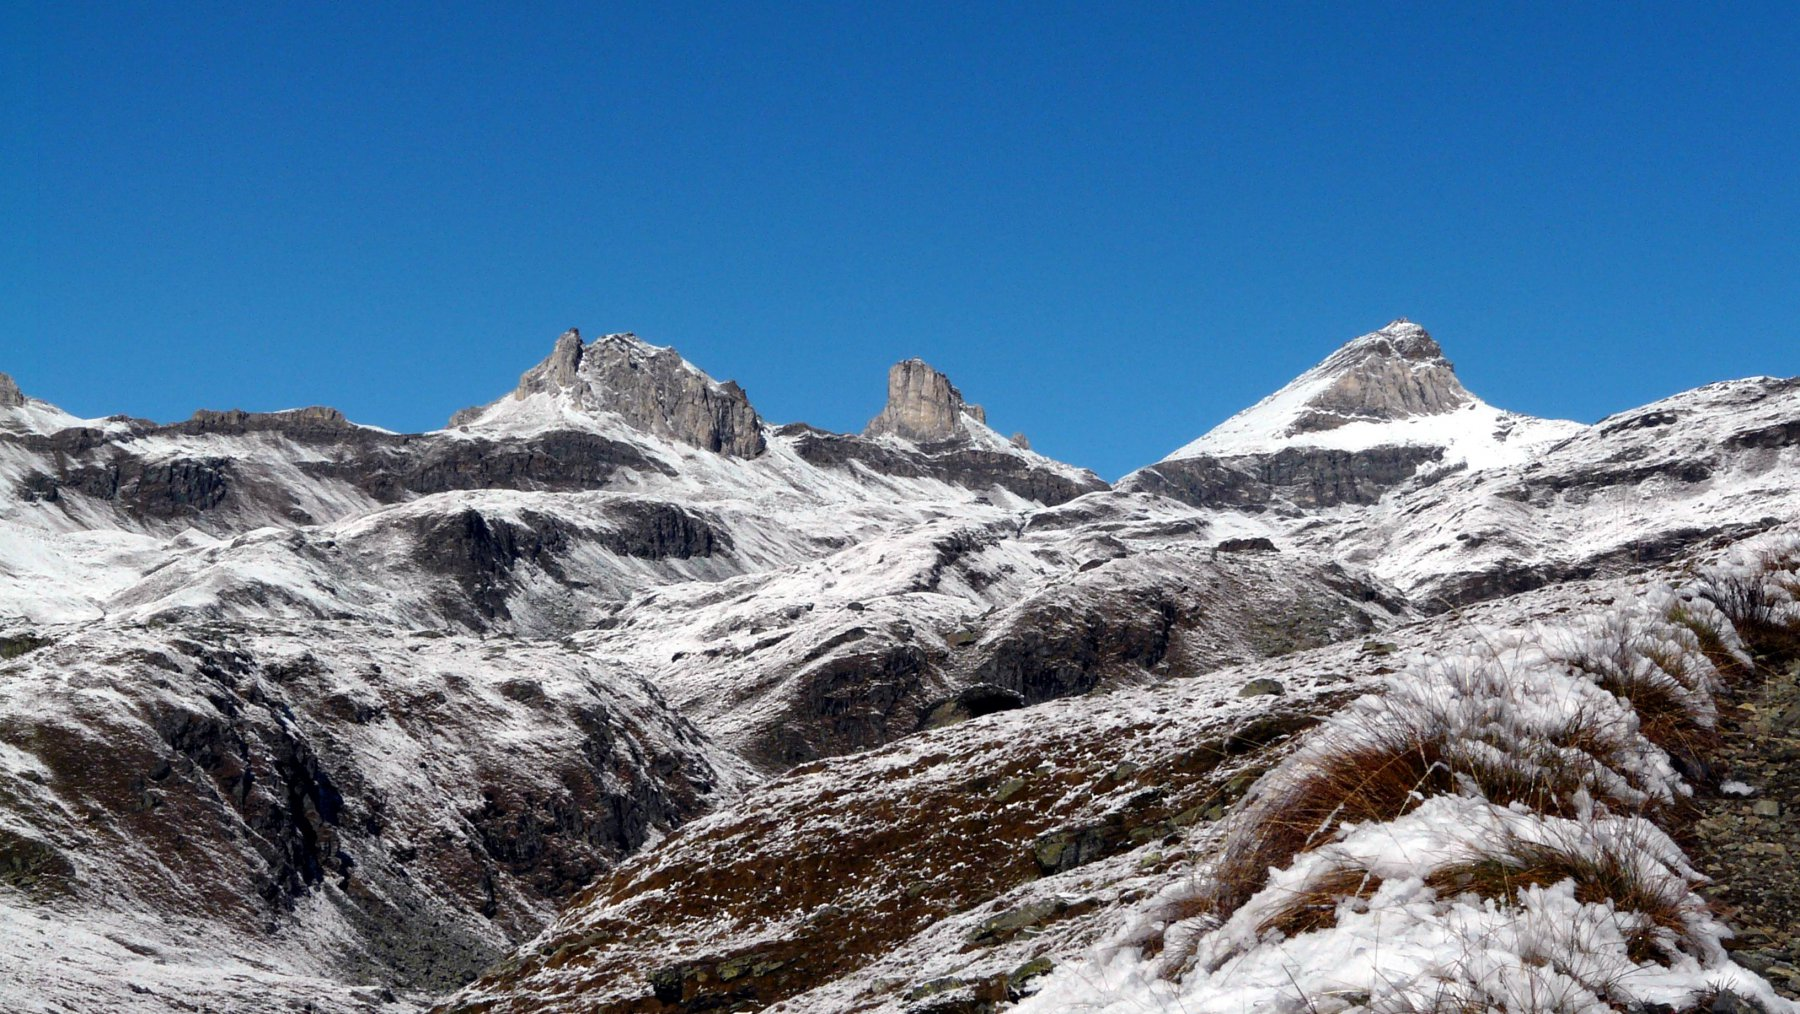 Cime Bianche